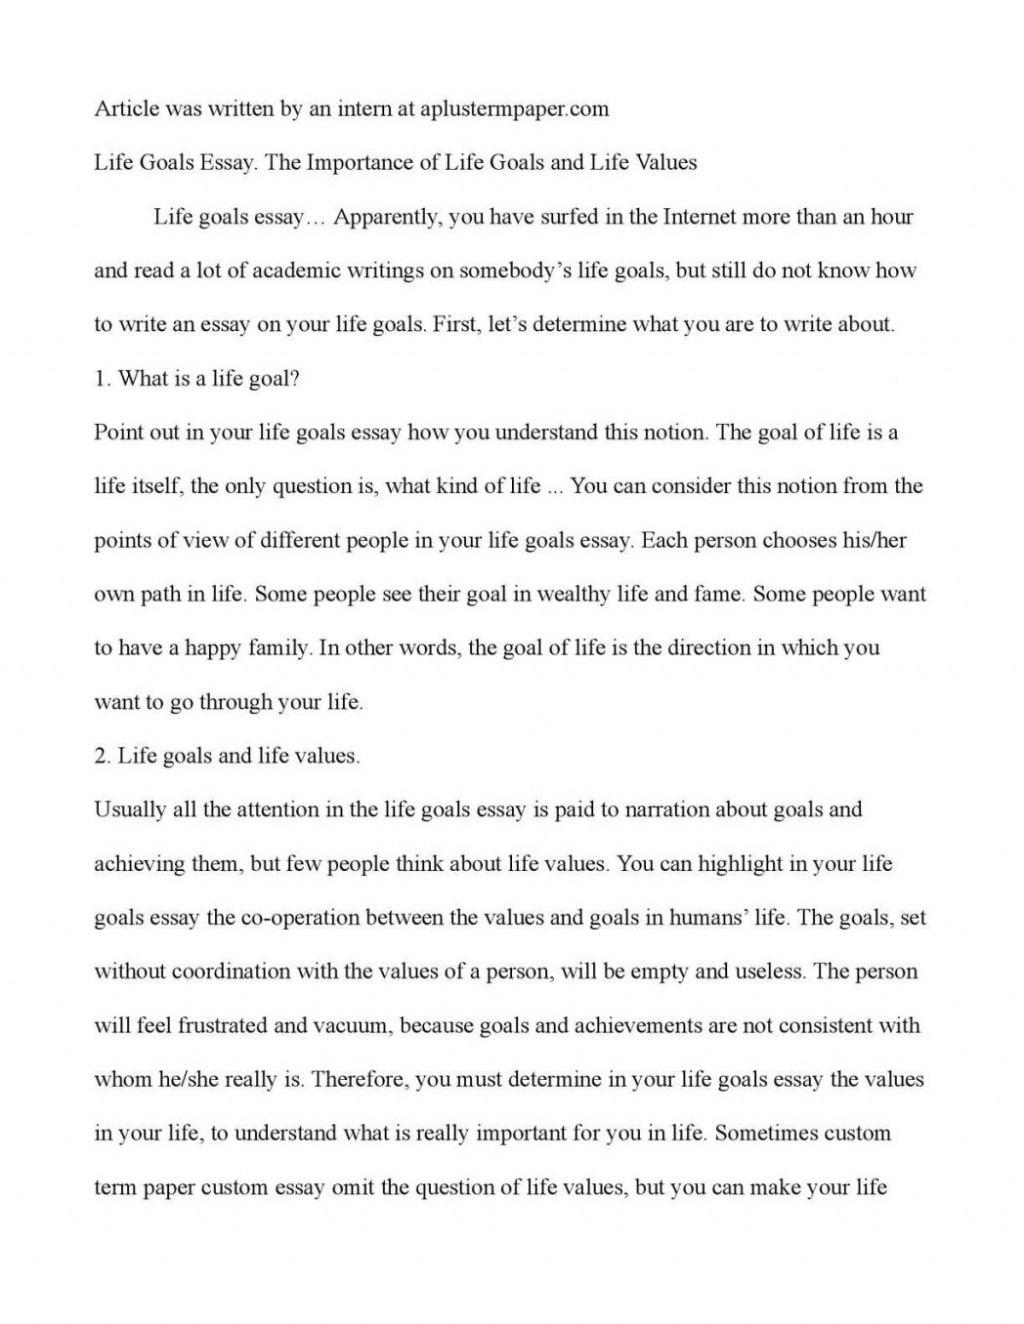 014 Essay Example Life Goals Narrative On Achieving Goal My Purpose In Exampl Examples Ambition 1048x1356 Wondrous Of Conclusion How To Have A Driven Can I Large